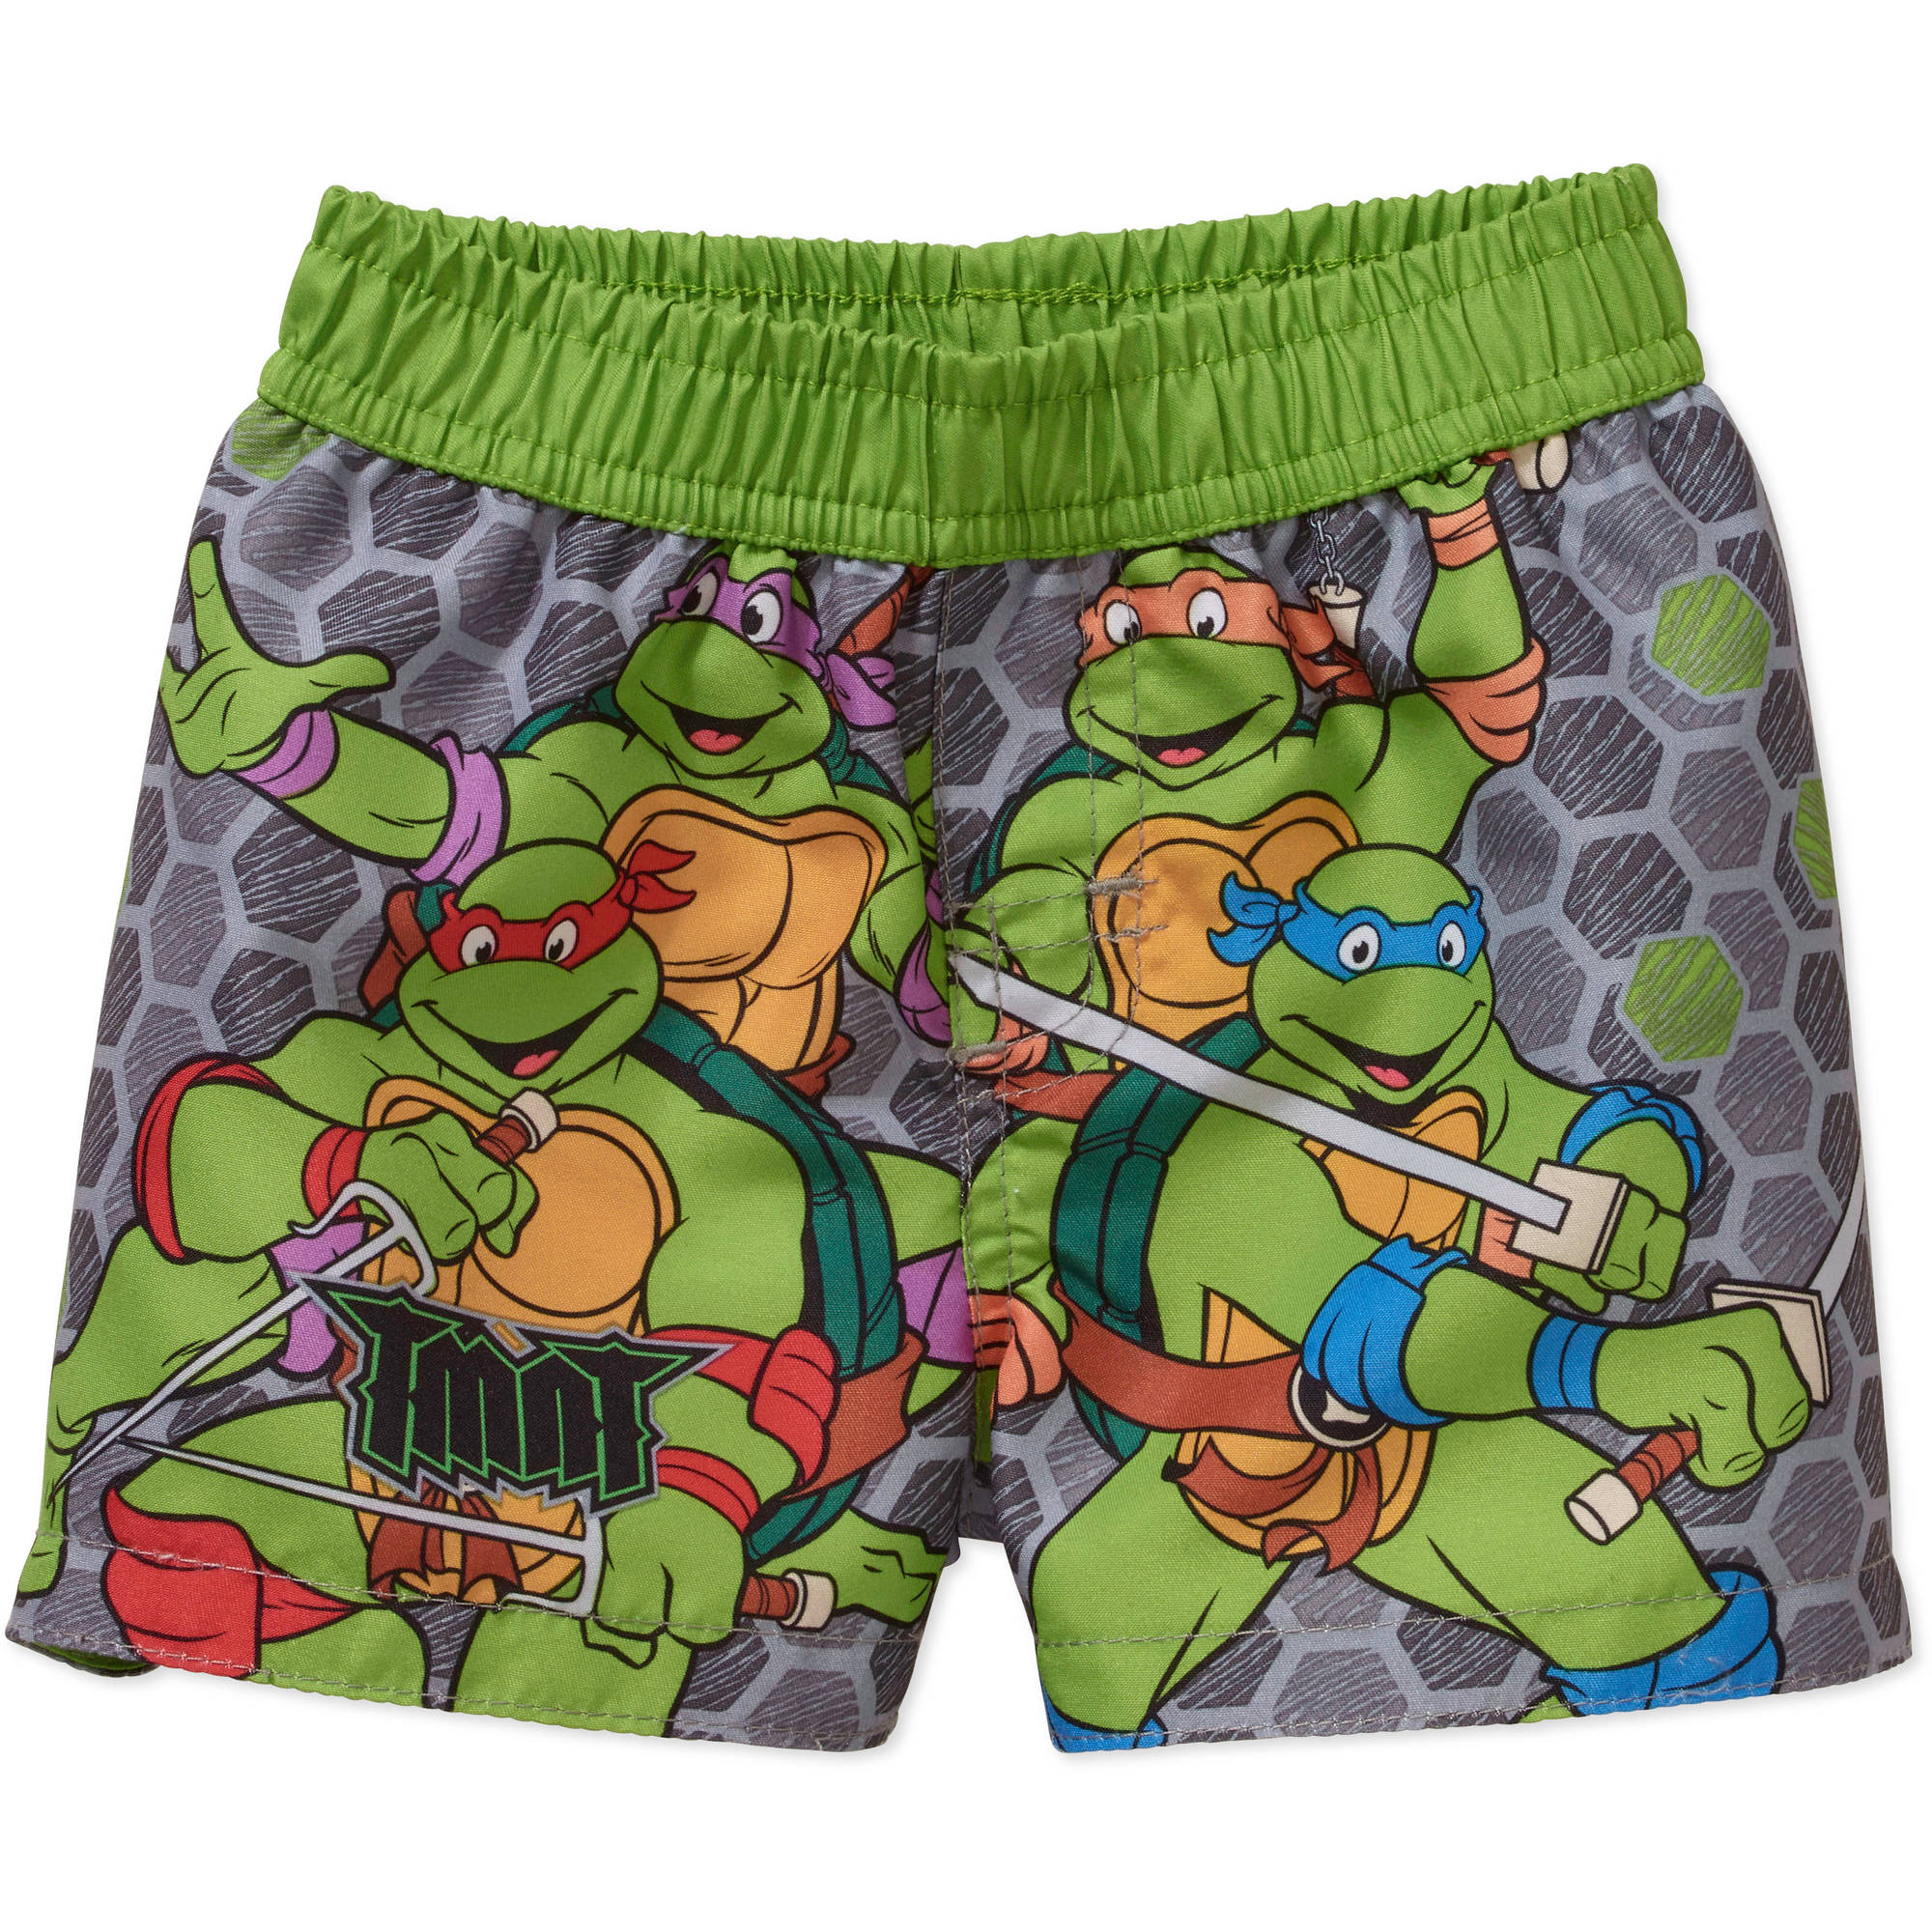 Teenage Mutant Ninja Turtles Newborn Baby Boy Swim Trunks